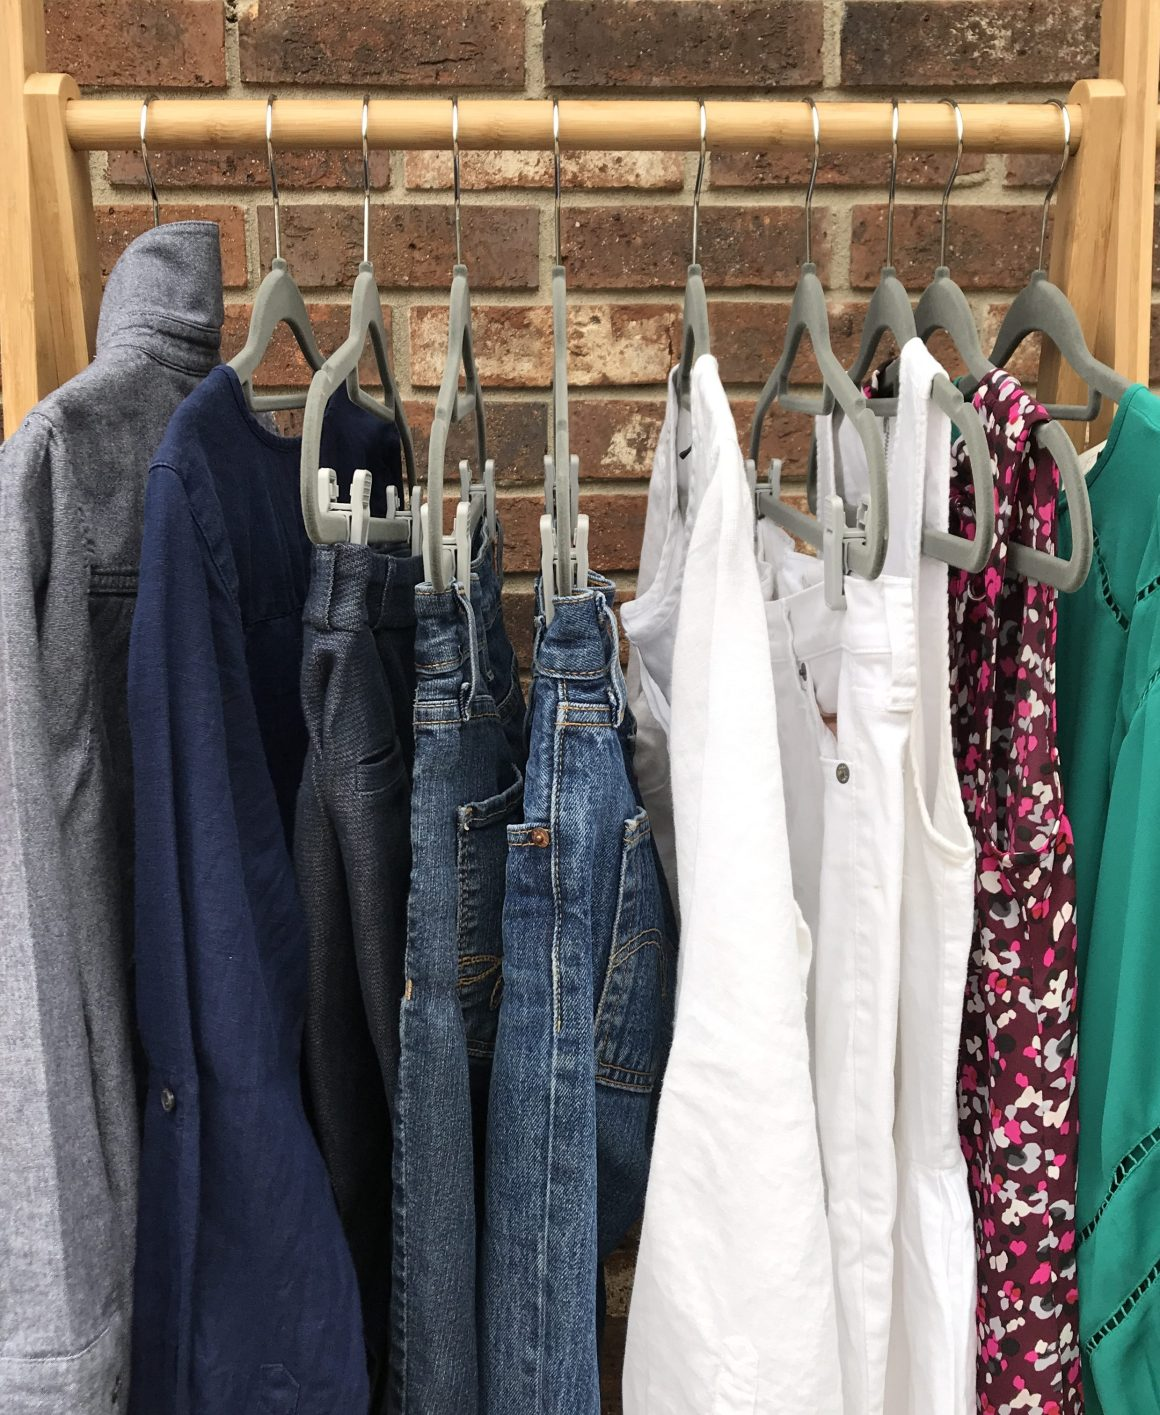 Rack with Clothing Blue, White, Wine and Teal